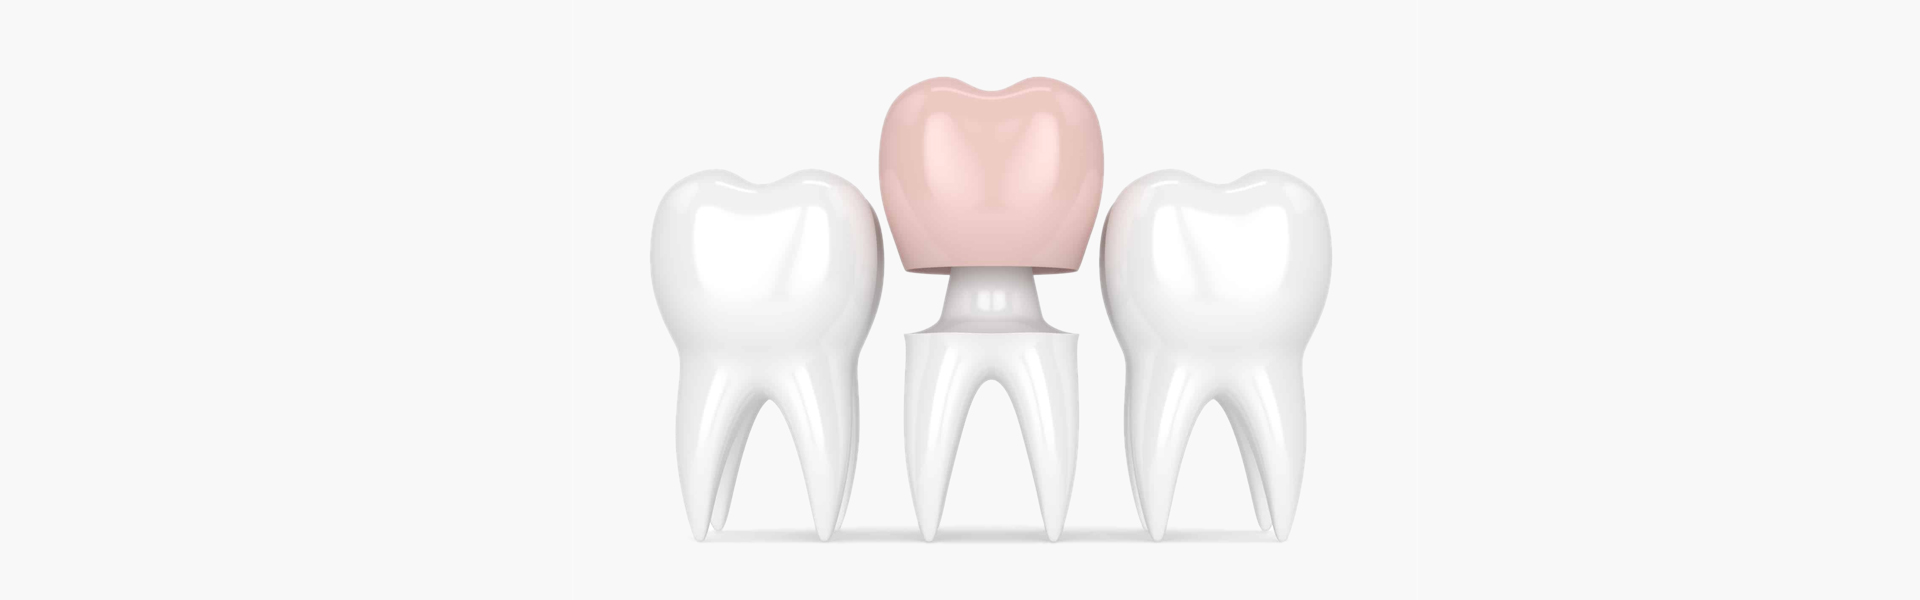 What Are Dental Crowns and Are They Effective?